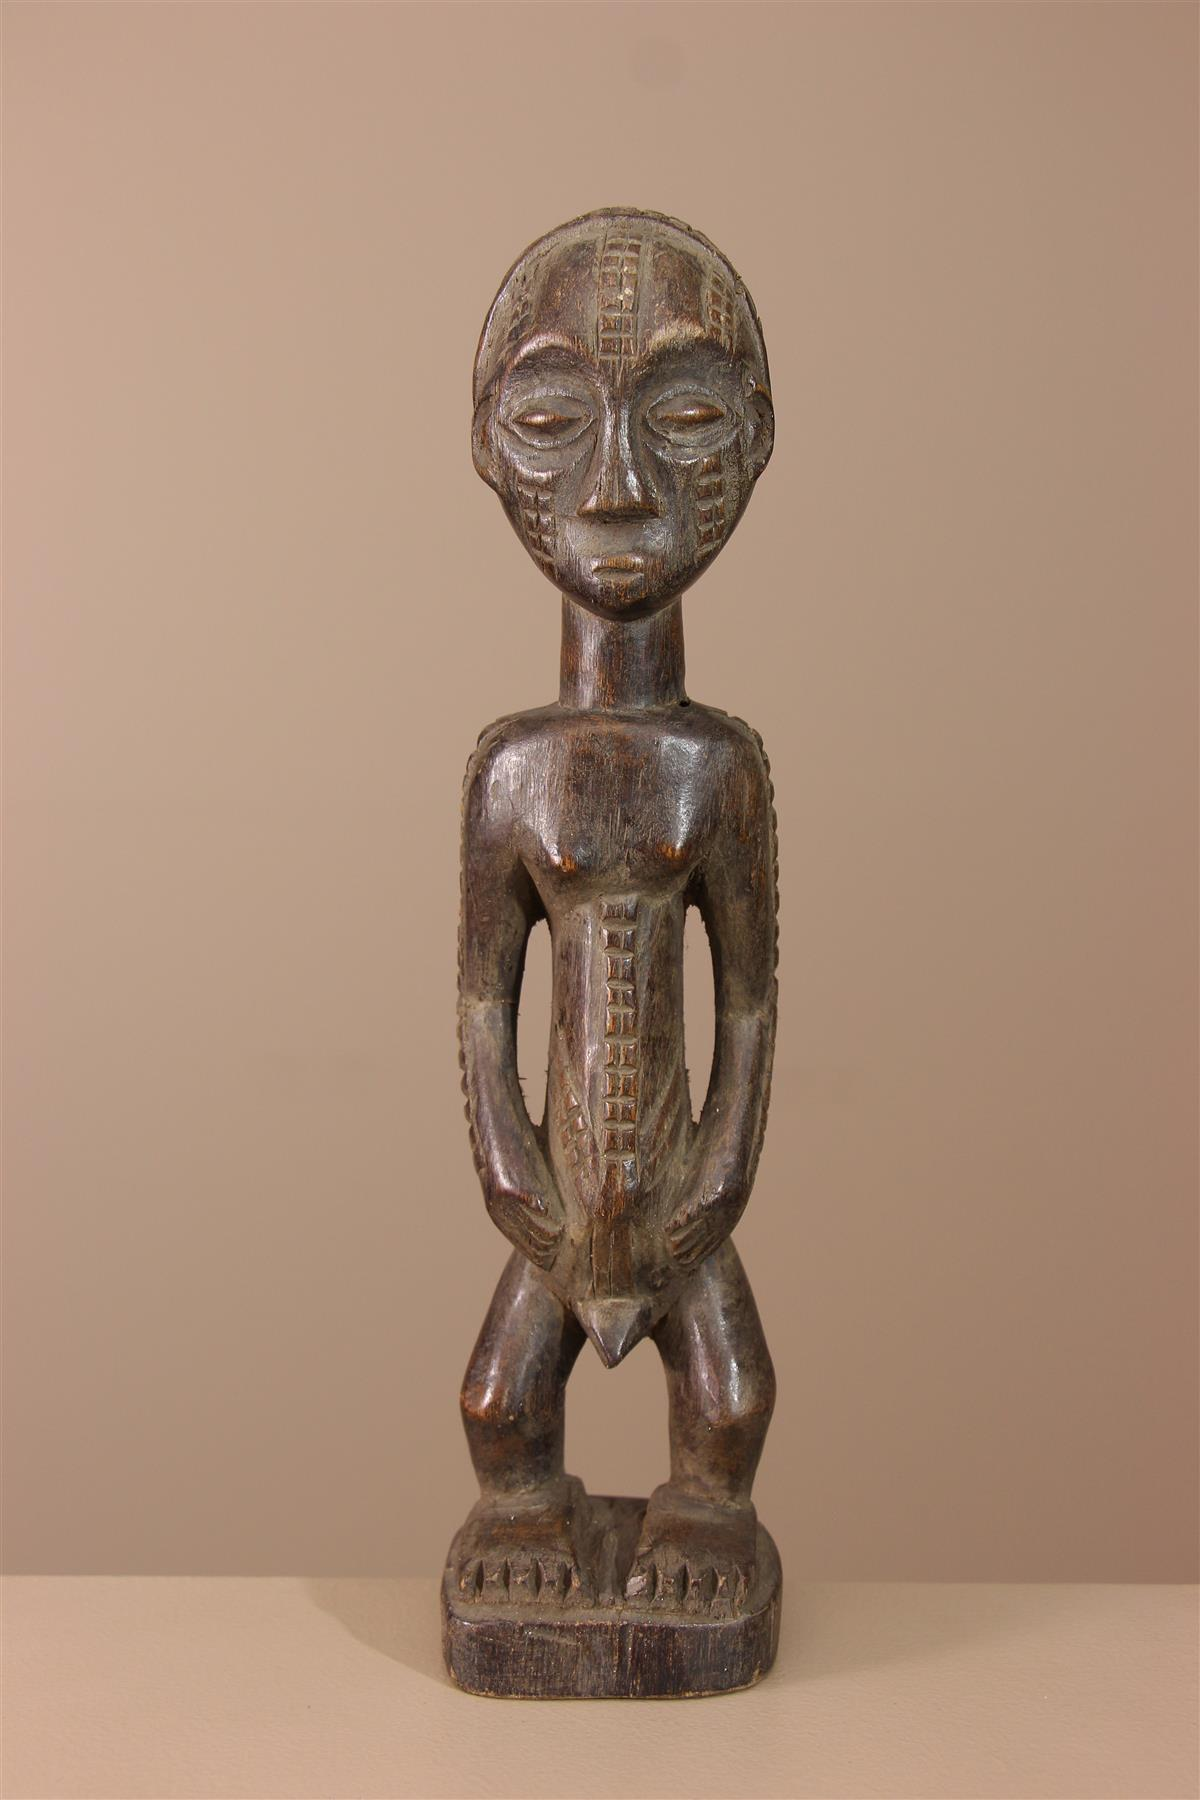 Statuette Tabwa - Déco africaine - Art africain traditionnel